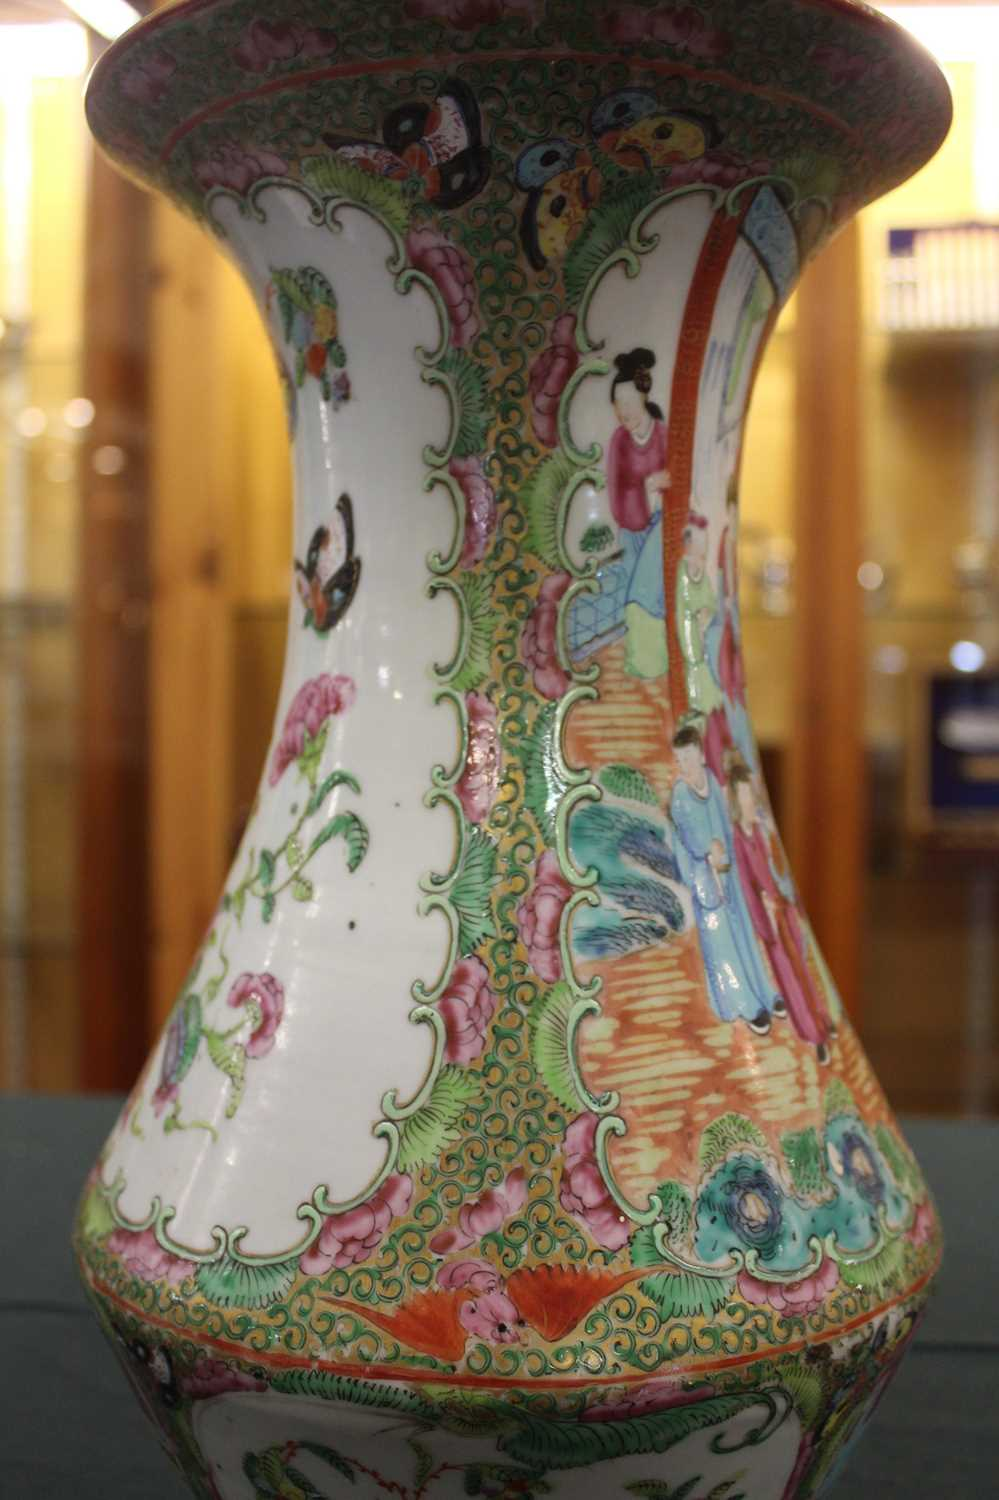 A 19th century Chinese Canton famille rose vase, enamel decorated with ceremonial figure scenes - Image 11 of 18